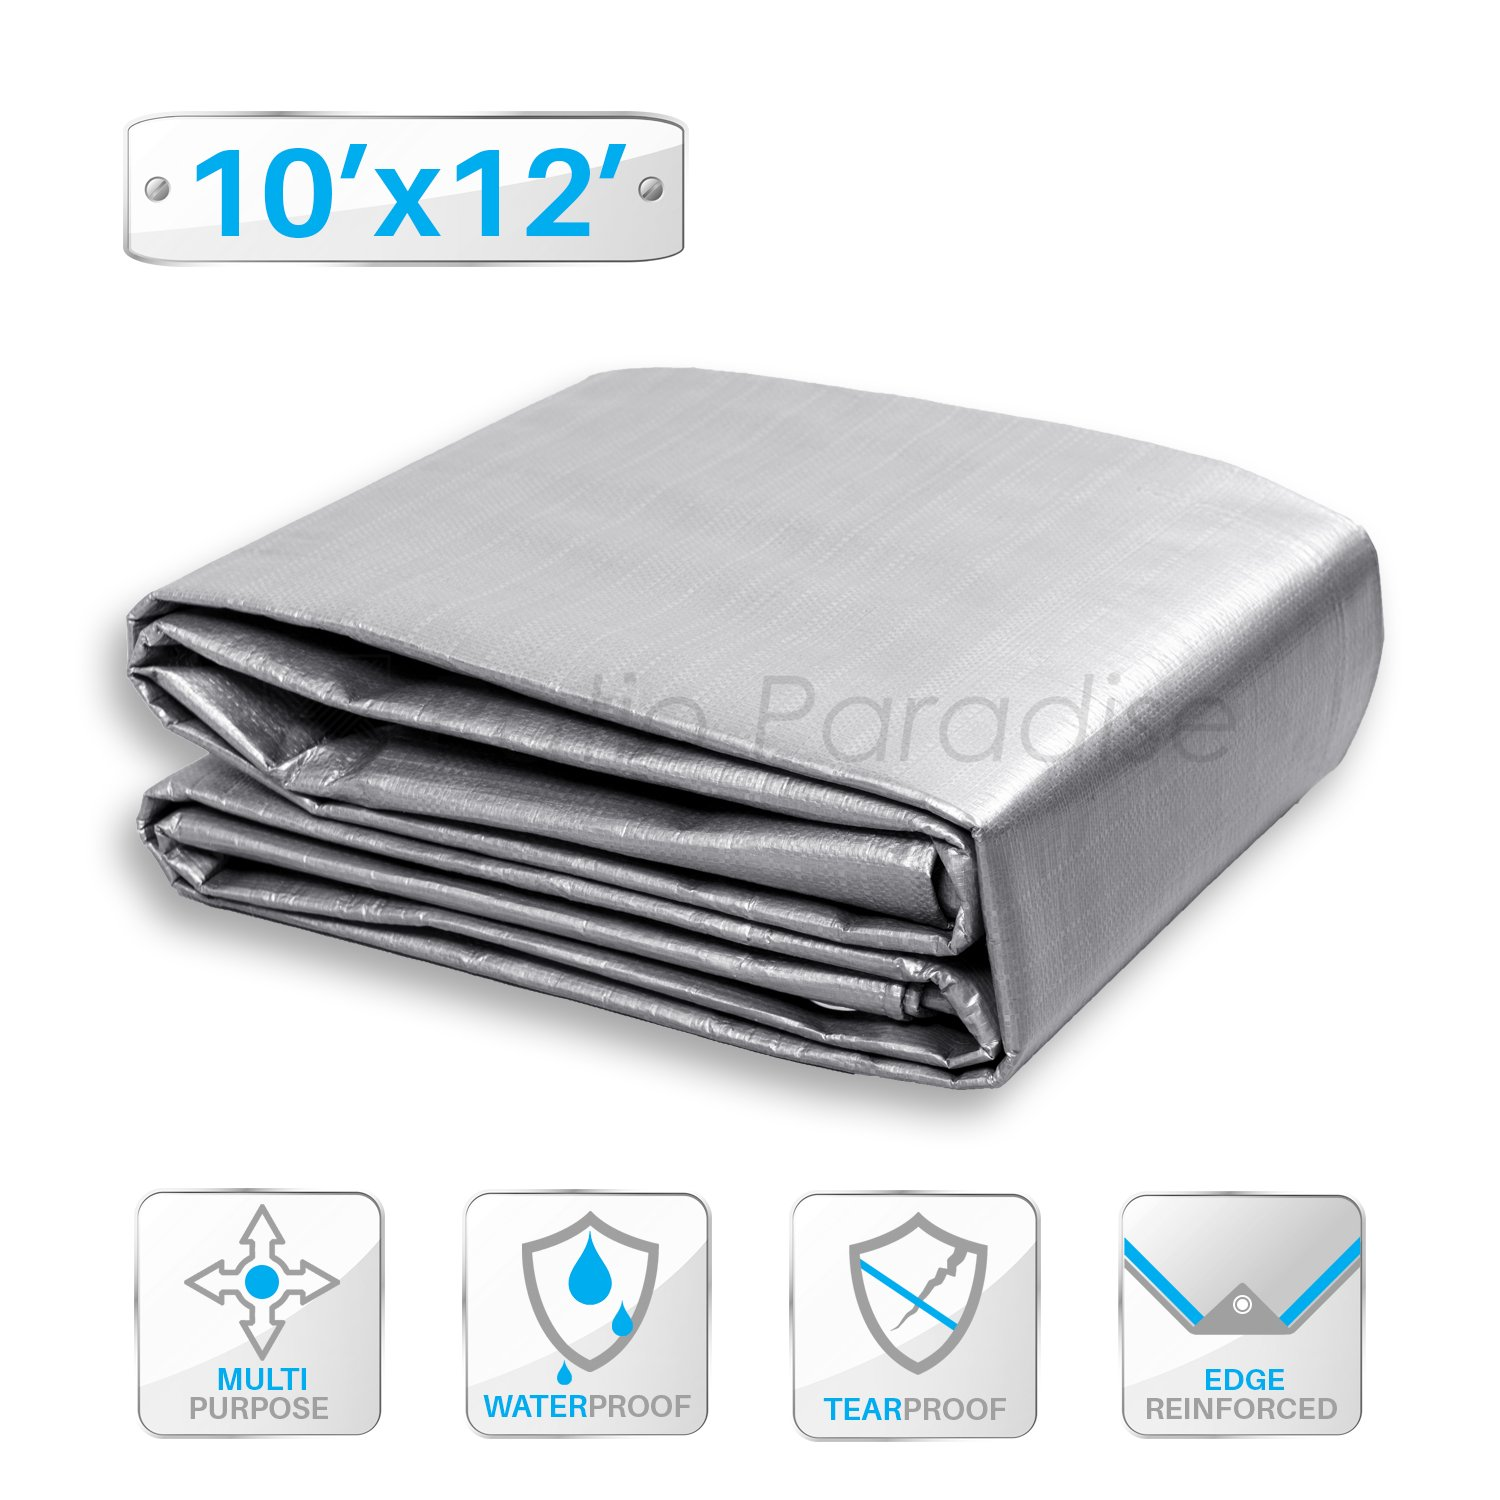 Patio Paradise 10 x 12 Feet Silver Poly Tarp, 10-mil Thick Lightweight Multi Purpose Waterproof Tarpaulin for Camping Trailer Canopy